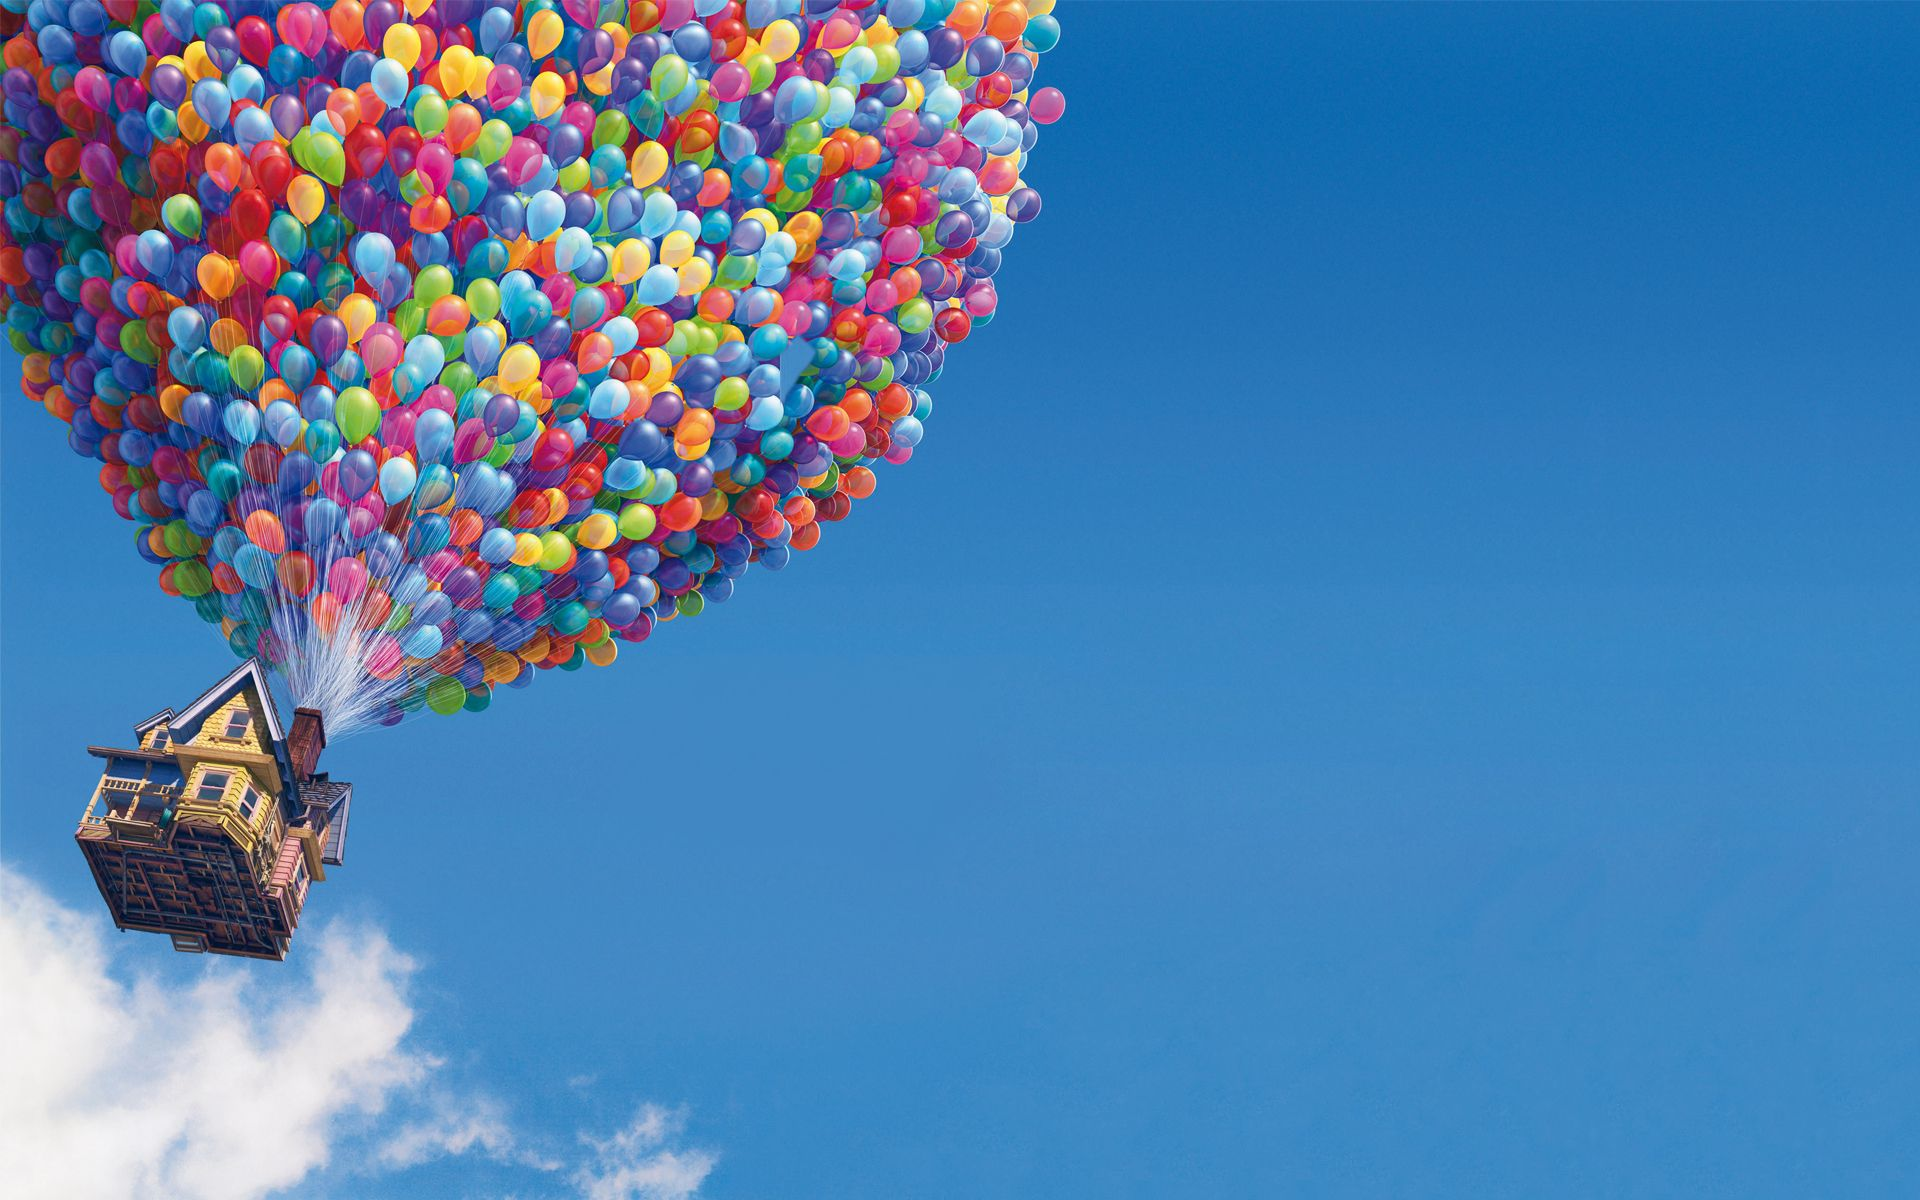 Up House Balloons Up Disney Balloons As Roof Decoration The Sims 4 Wish List